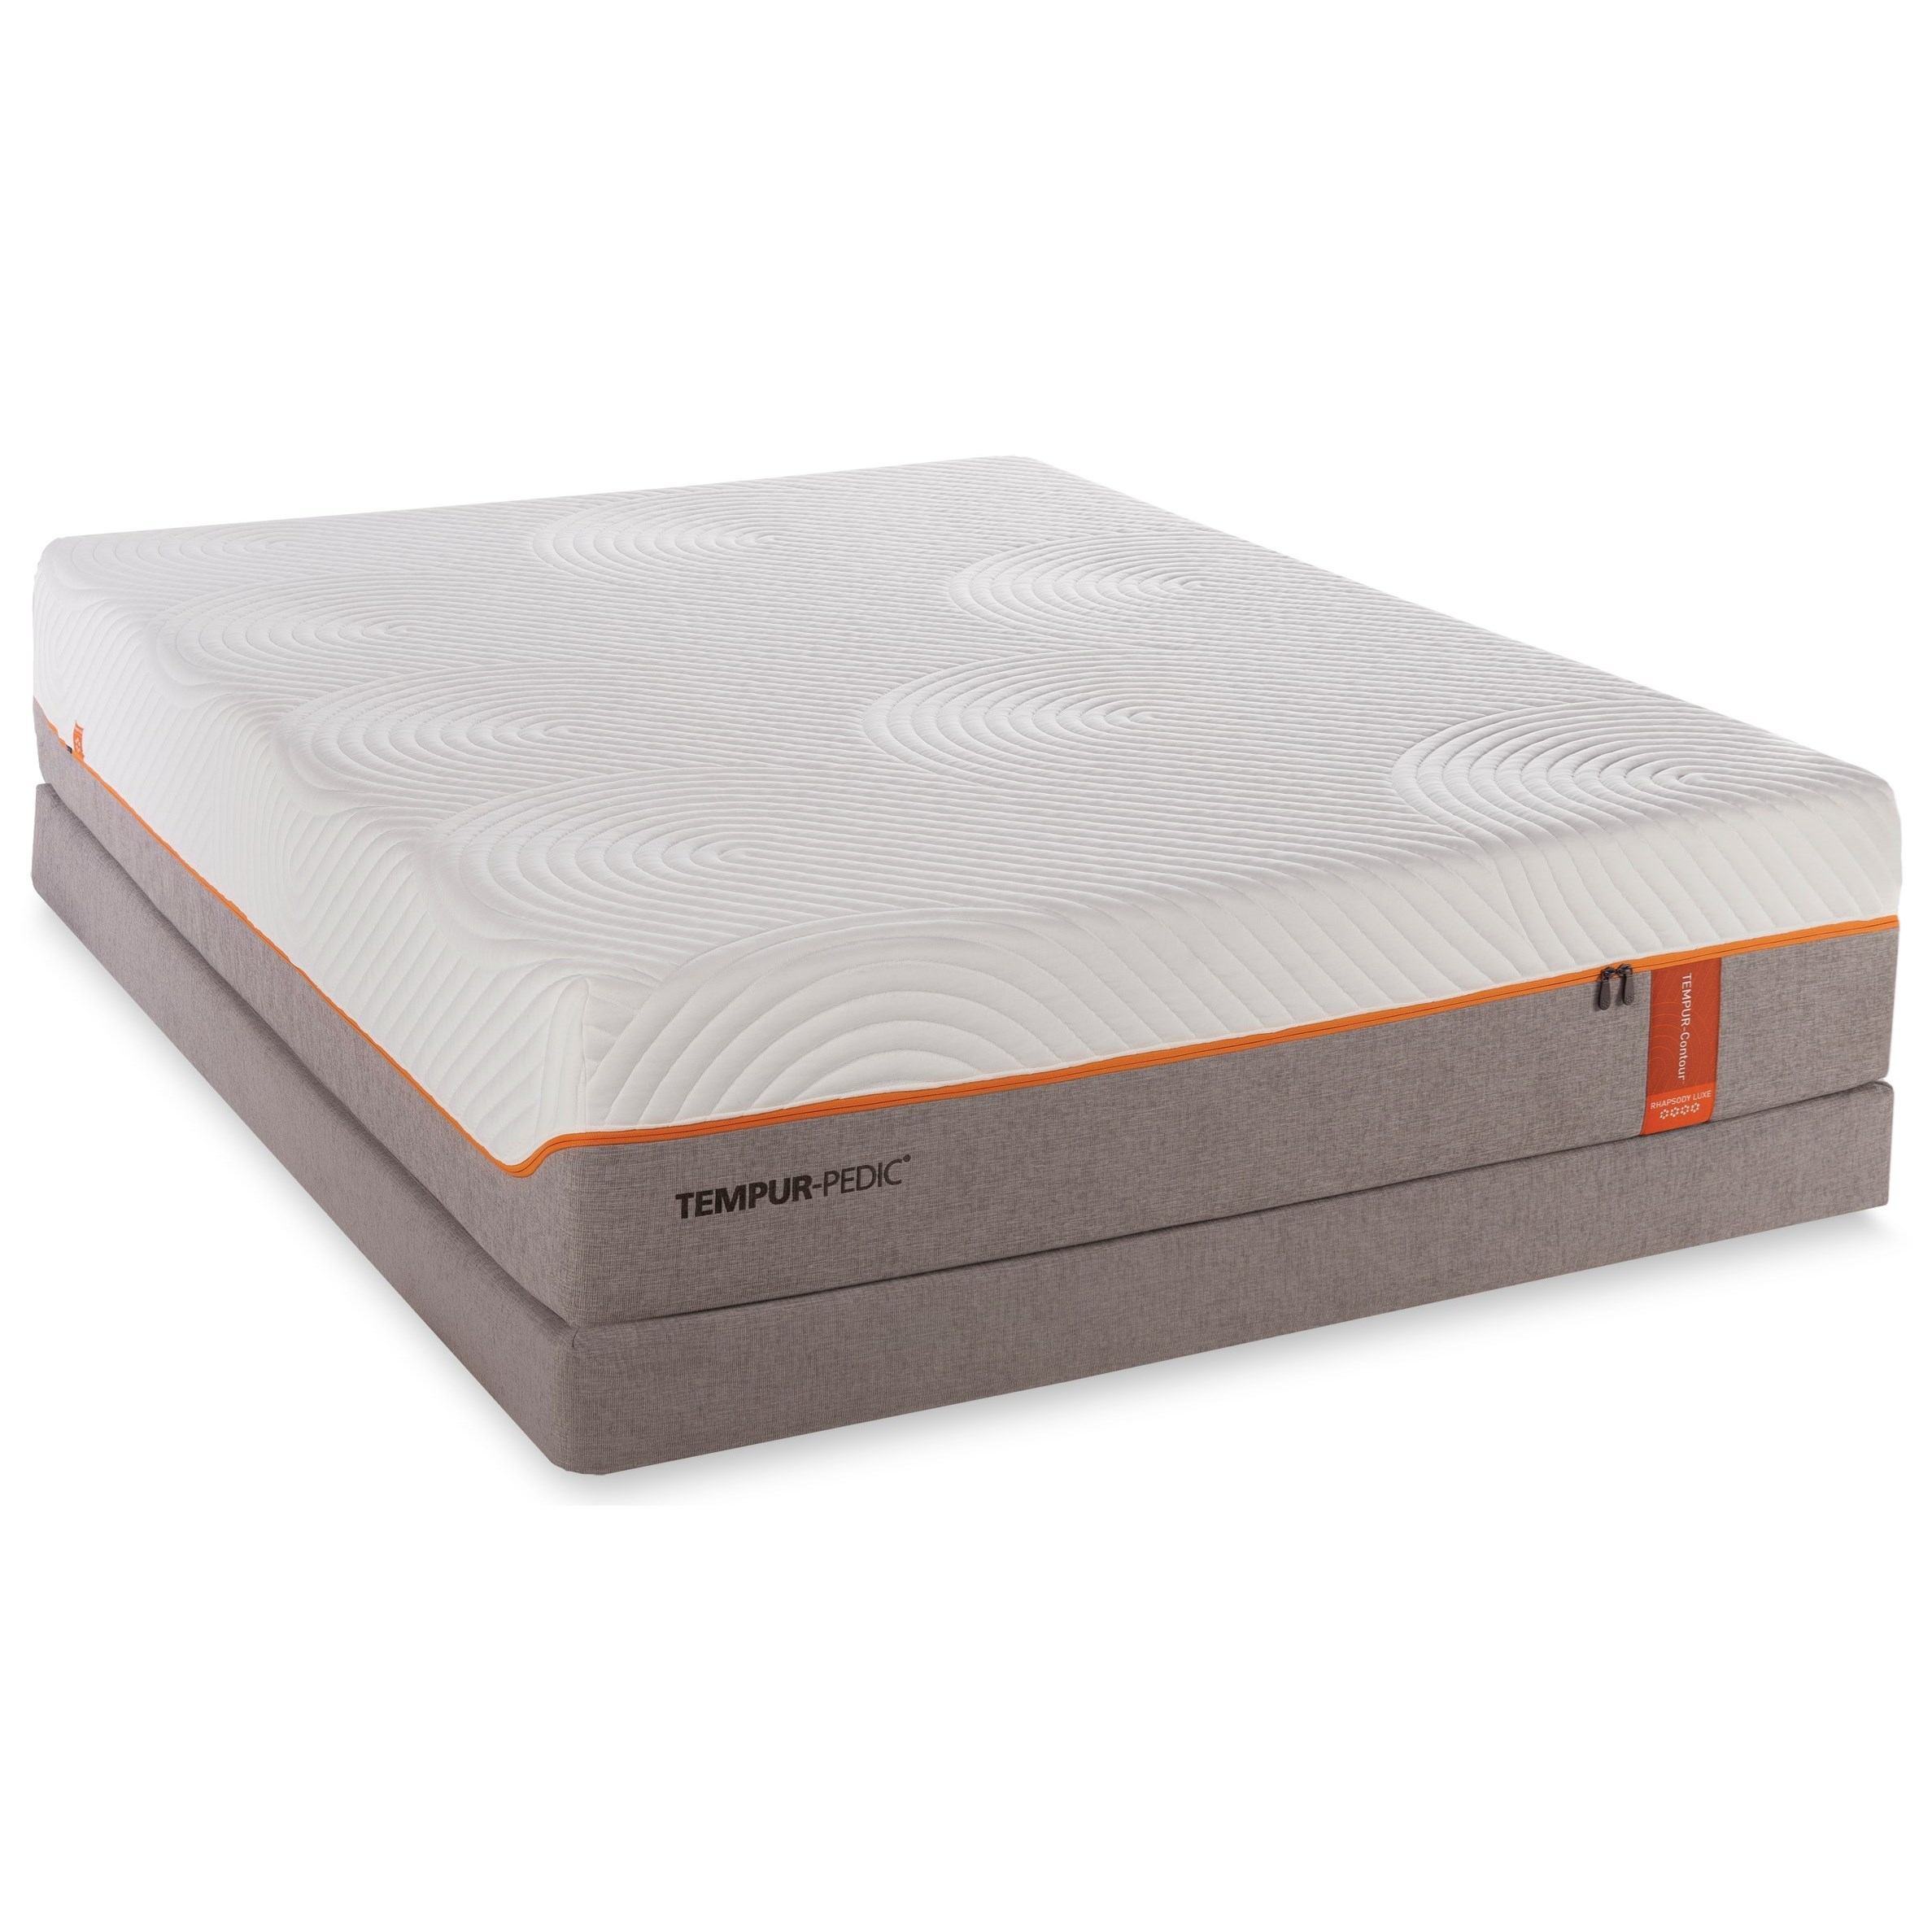 Tempur-Pedic® TEMPUR-Contour Rhapsody Luxe King Medium Firm Mattress Set - Item Number: 10258170+2x20510120